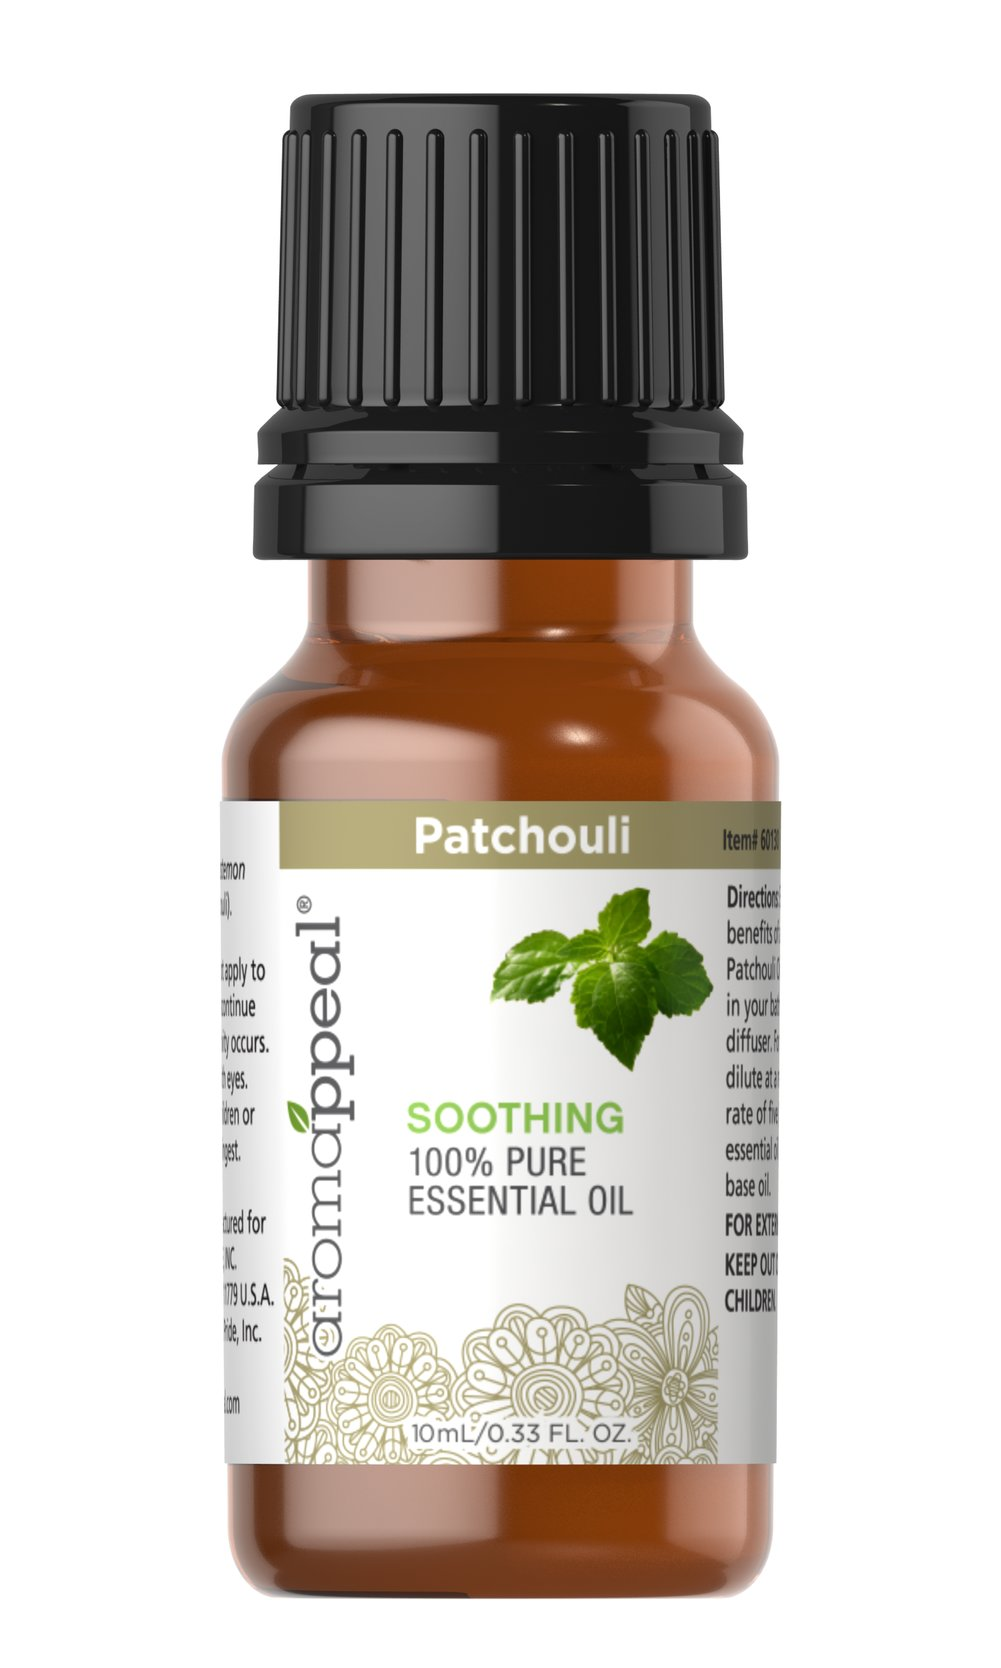 Patchouli 100% Pure Essential Oil  10 ml Oil  $15.29